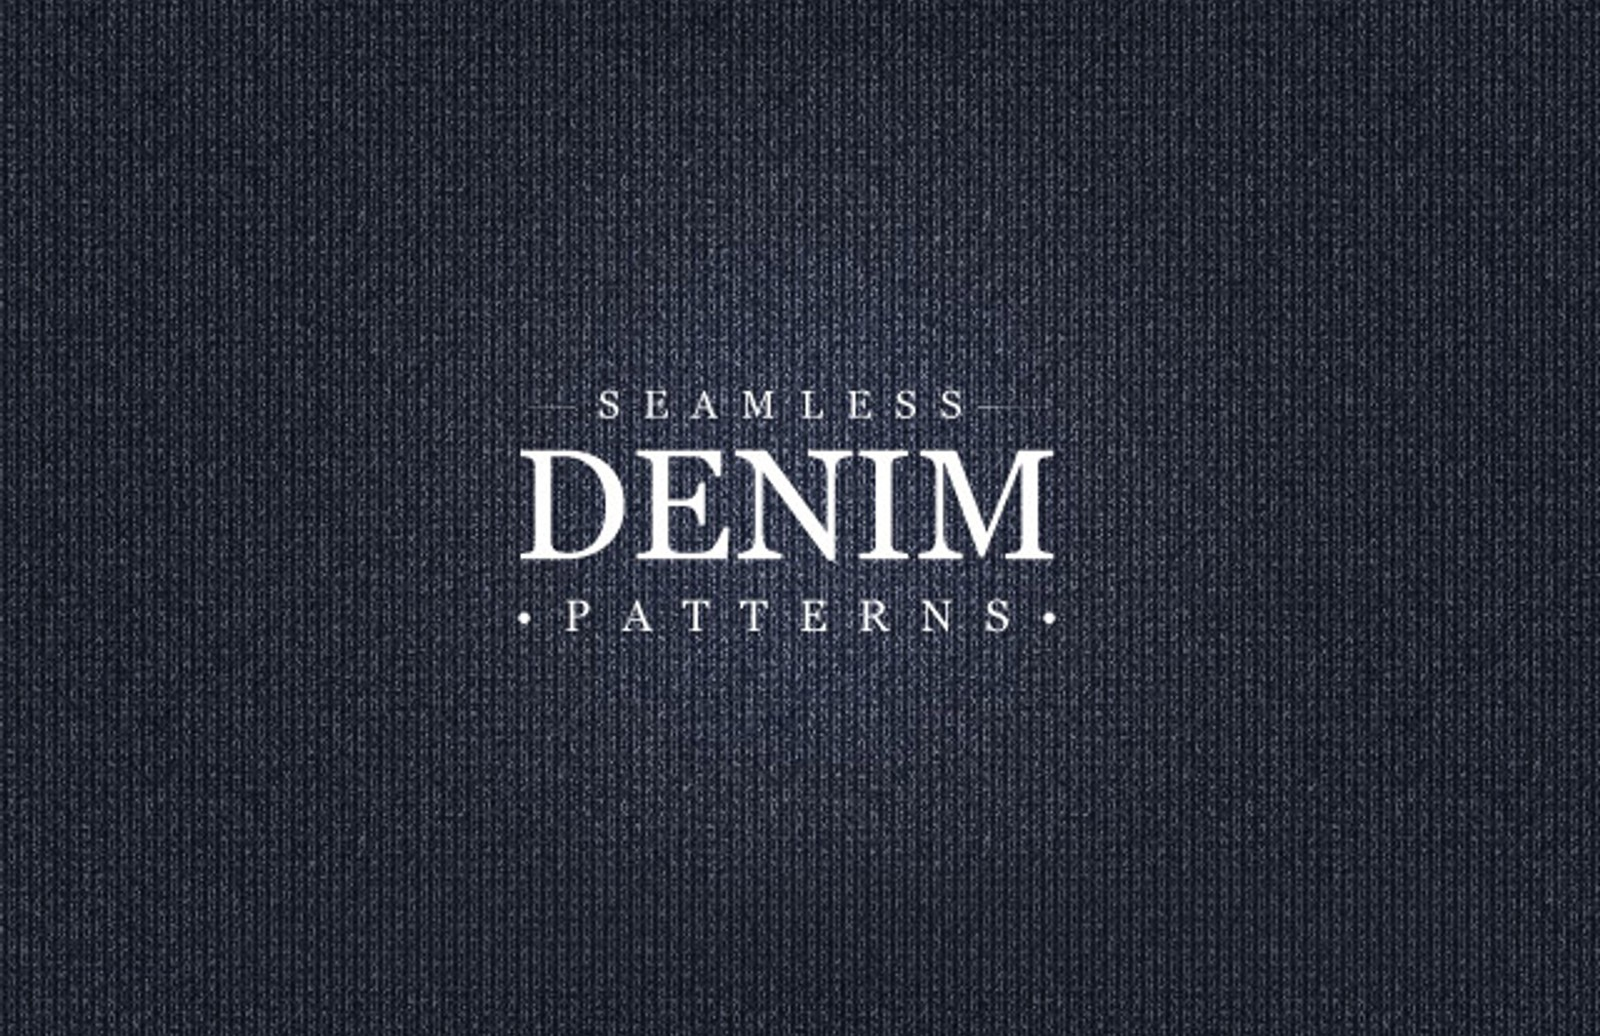 Seamless  Denim  Patterns  Preview1